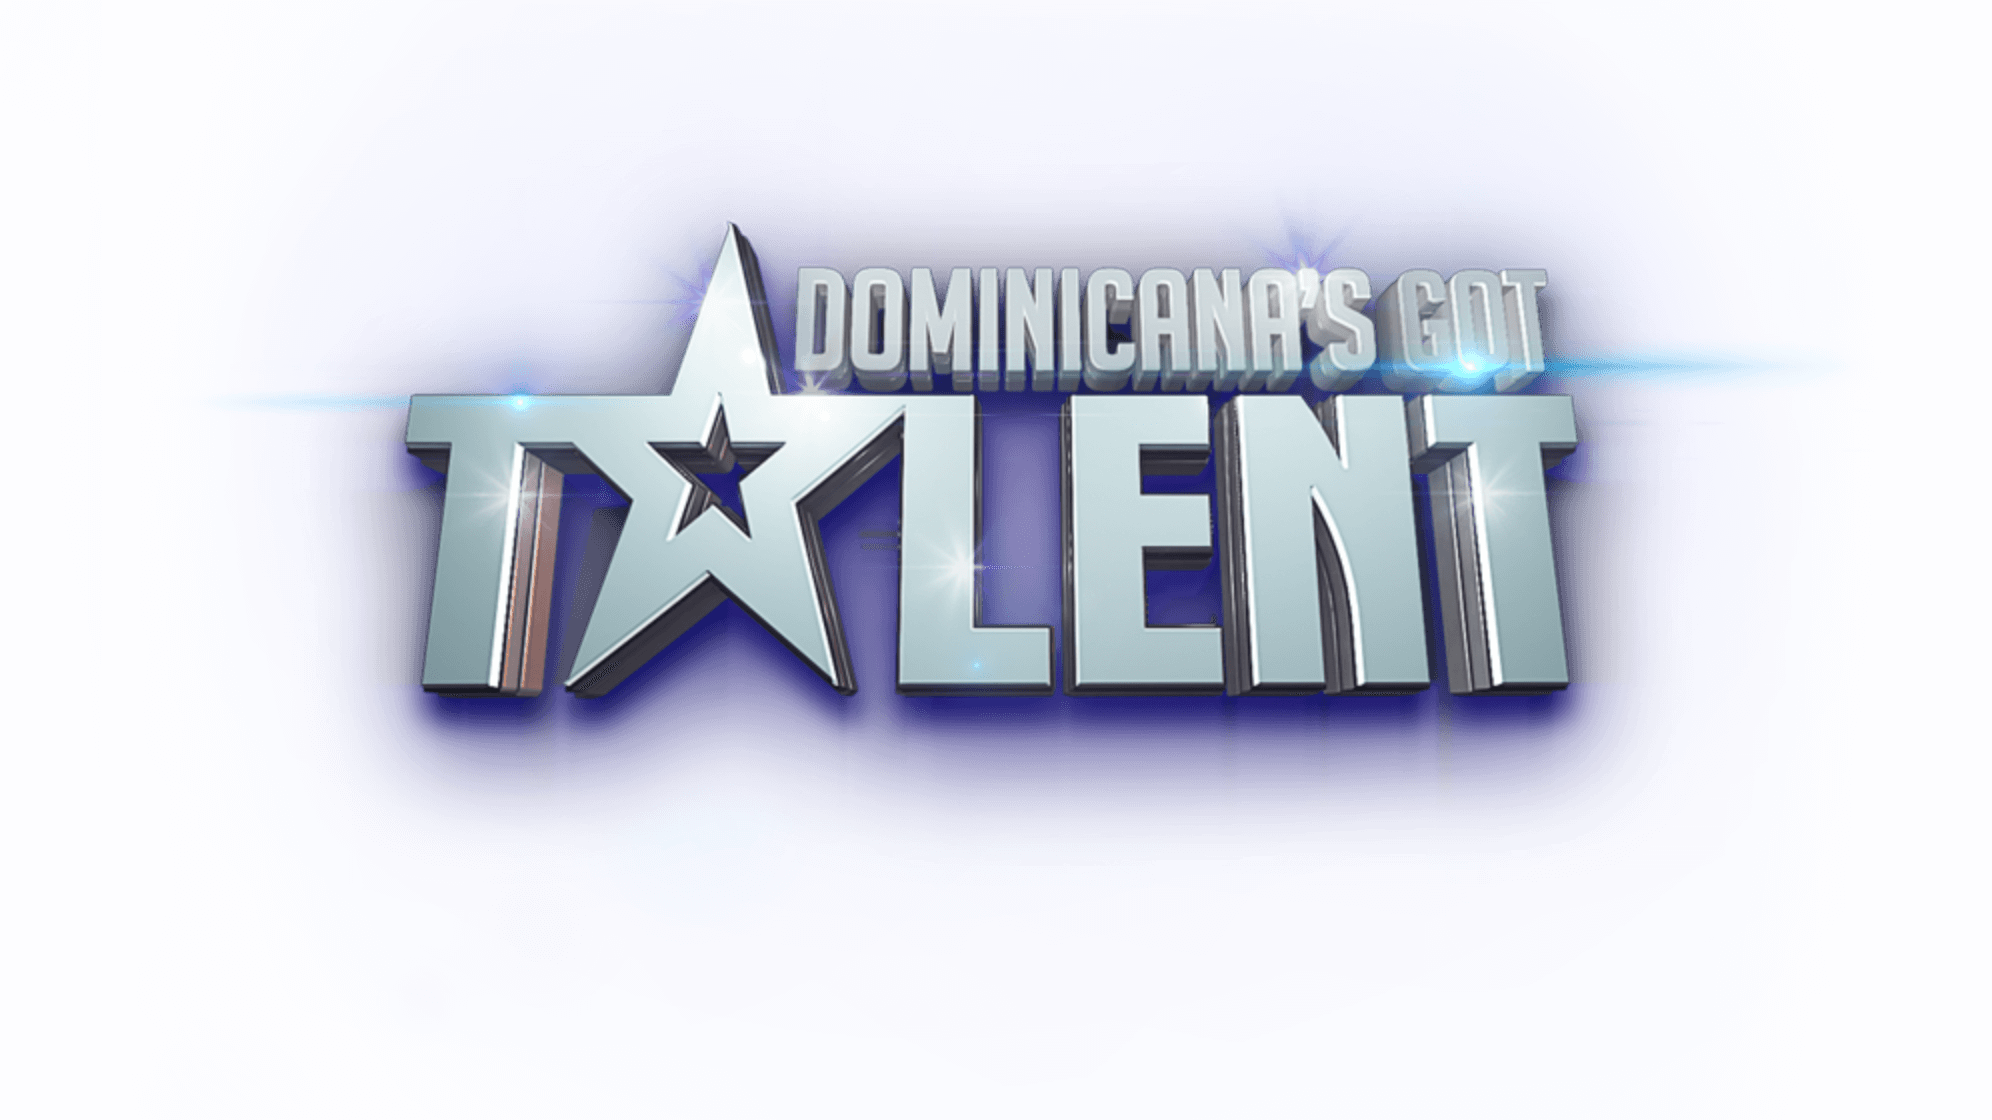 Dominicanas got talent